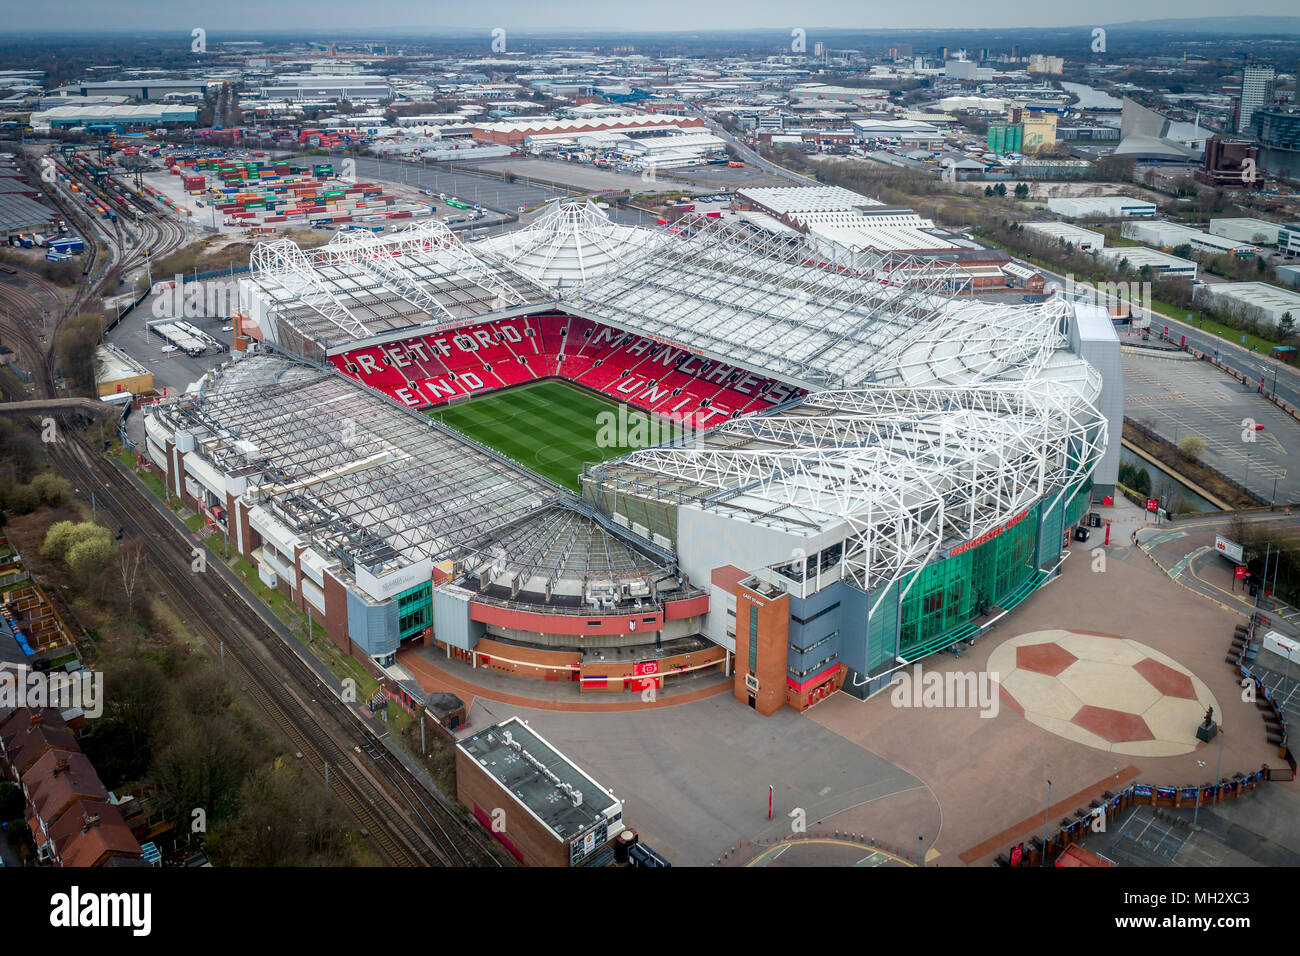 Aerial view of Old Trafford Stadium, home to Manchester United FC - Stock Image